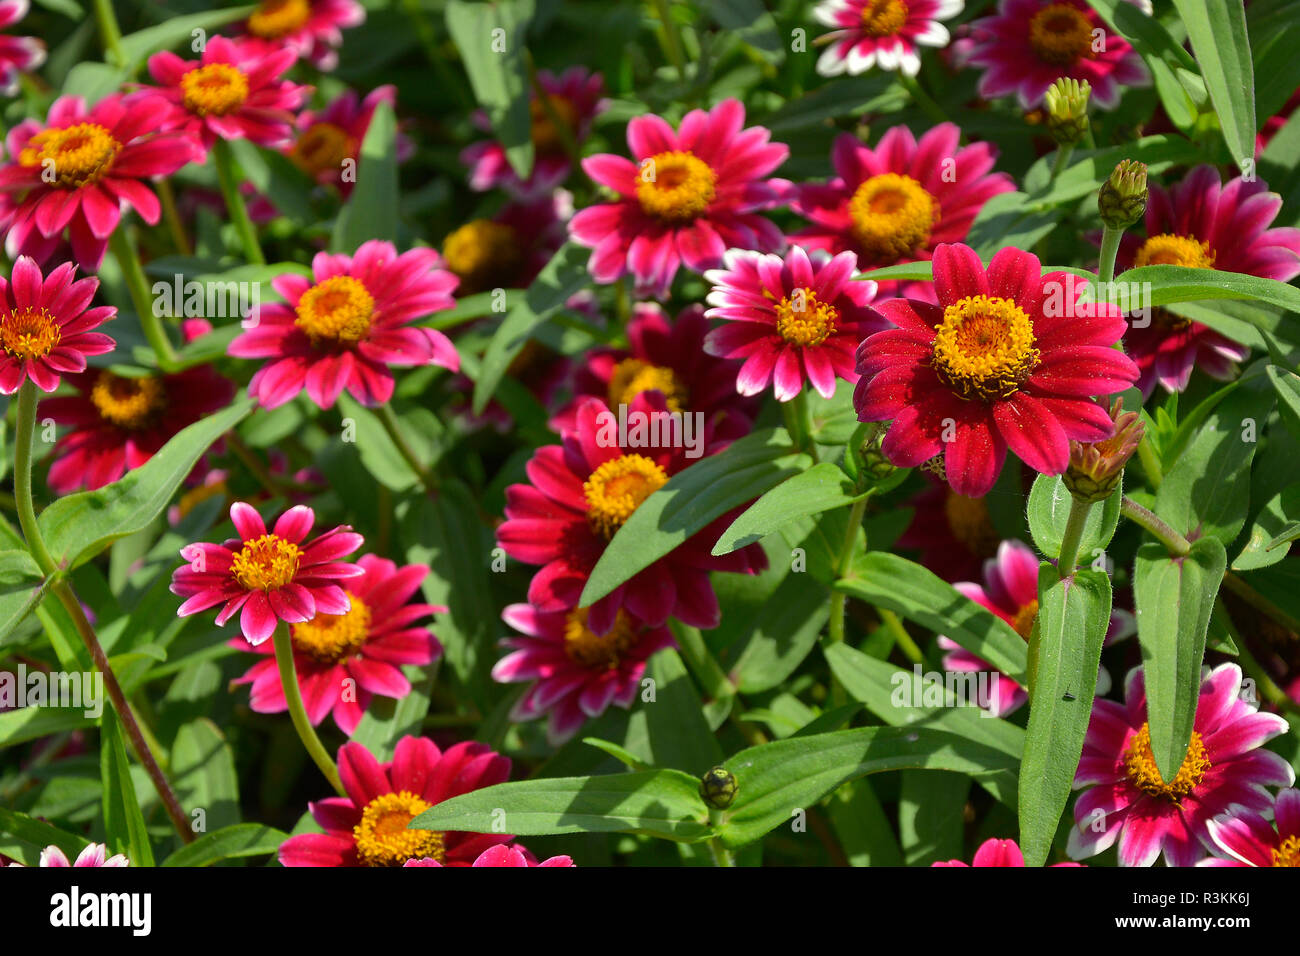 Close up of a flower border with colouful flowering Zinnia 'Zany Rose Pico' Stock Photo